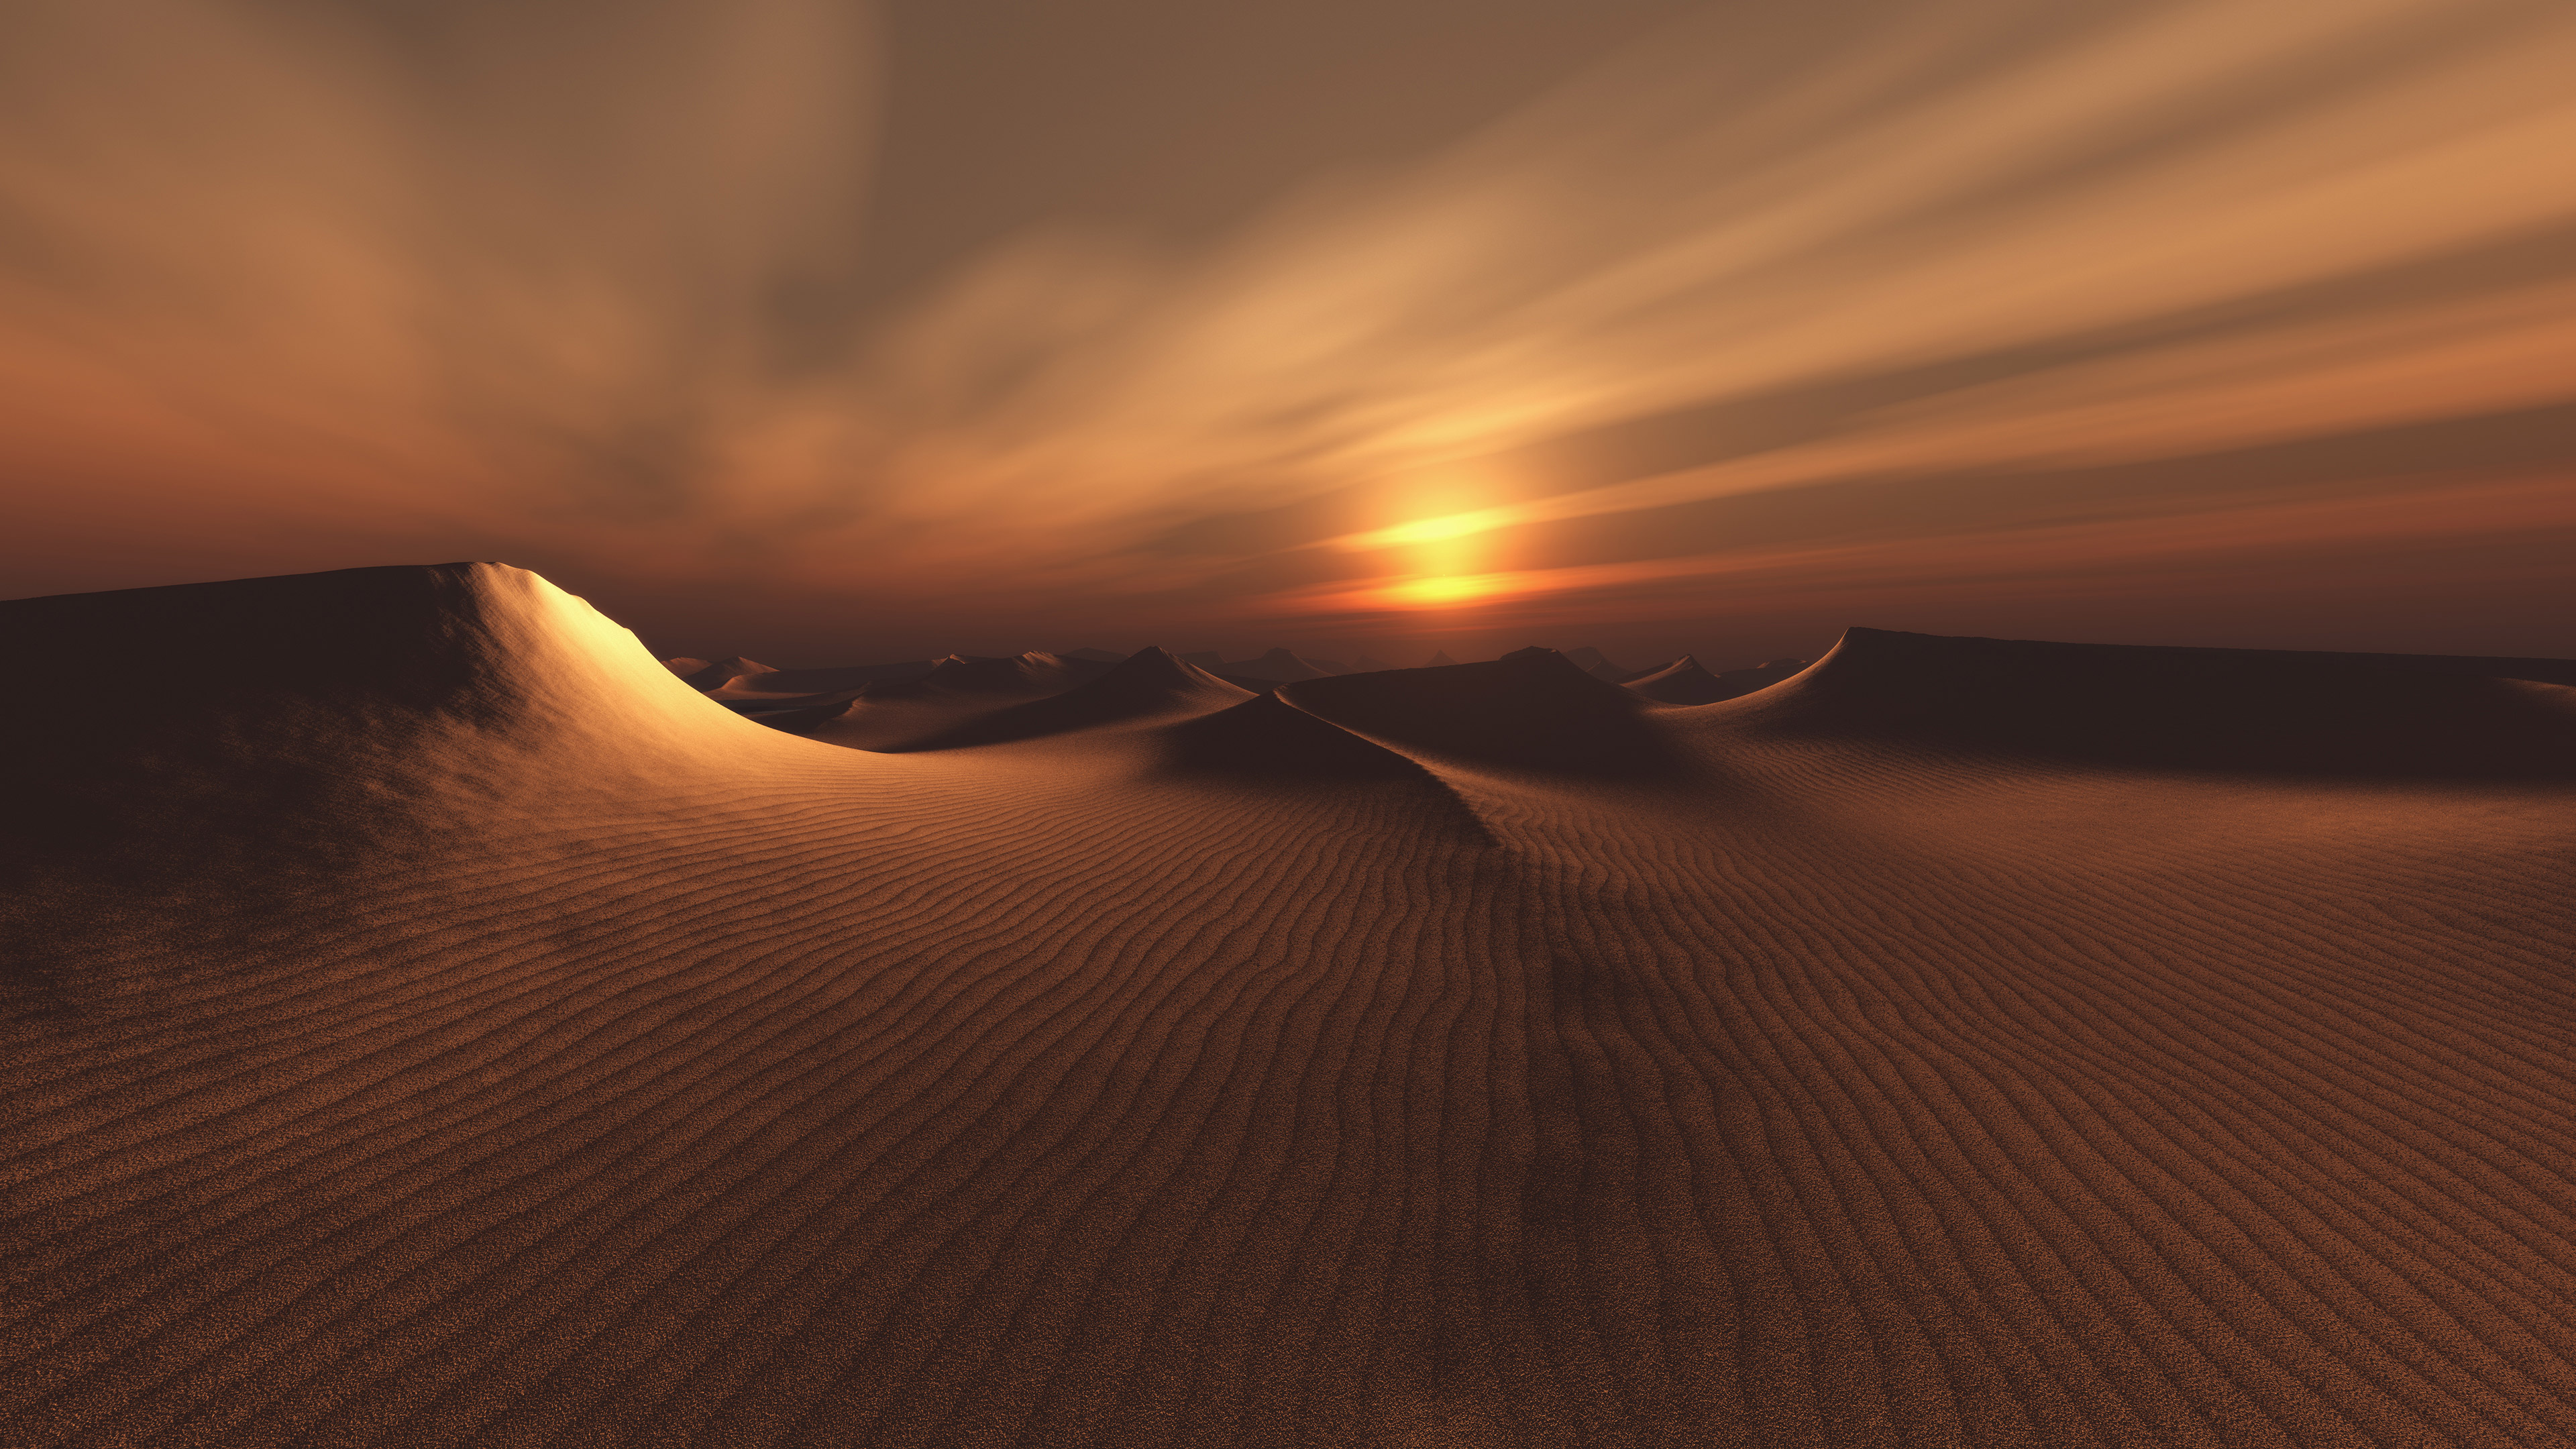 Desert Dark Hd Nature 4k Wallpapers Images Backgrounds Photos And Pictures